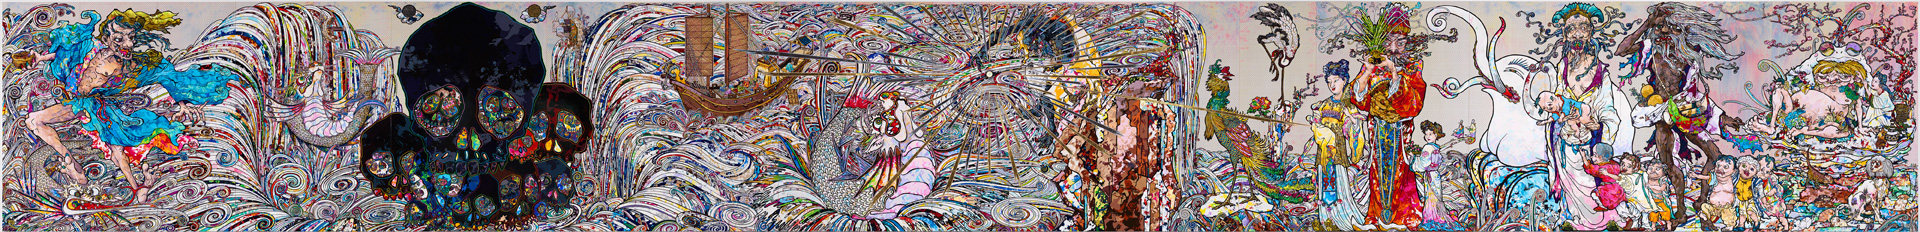 Takashi Murakami - In the Land of the Dead, Stepping on the Tail of a Rainbow, 2014, acrylic on canvas